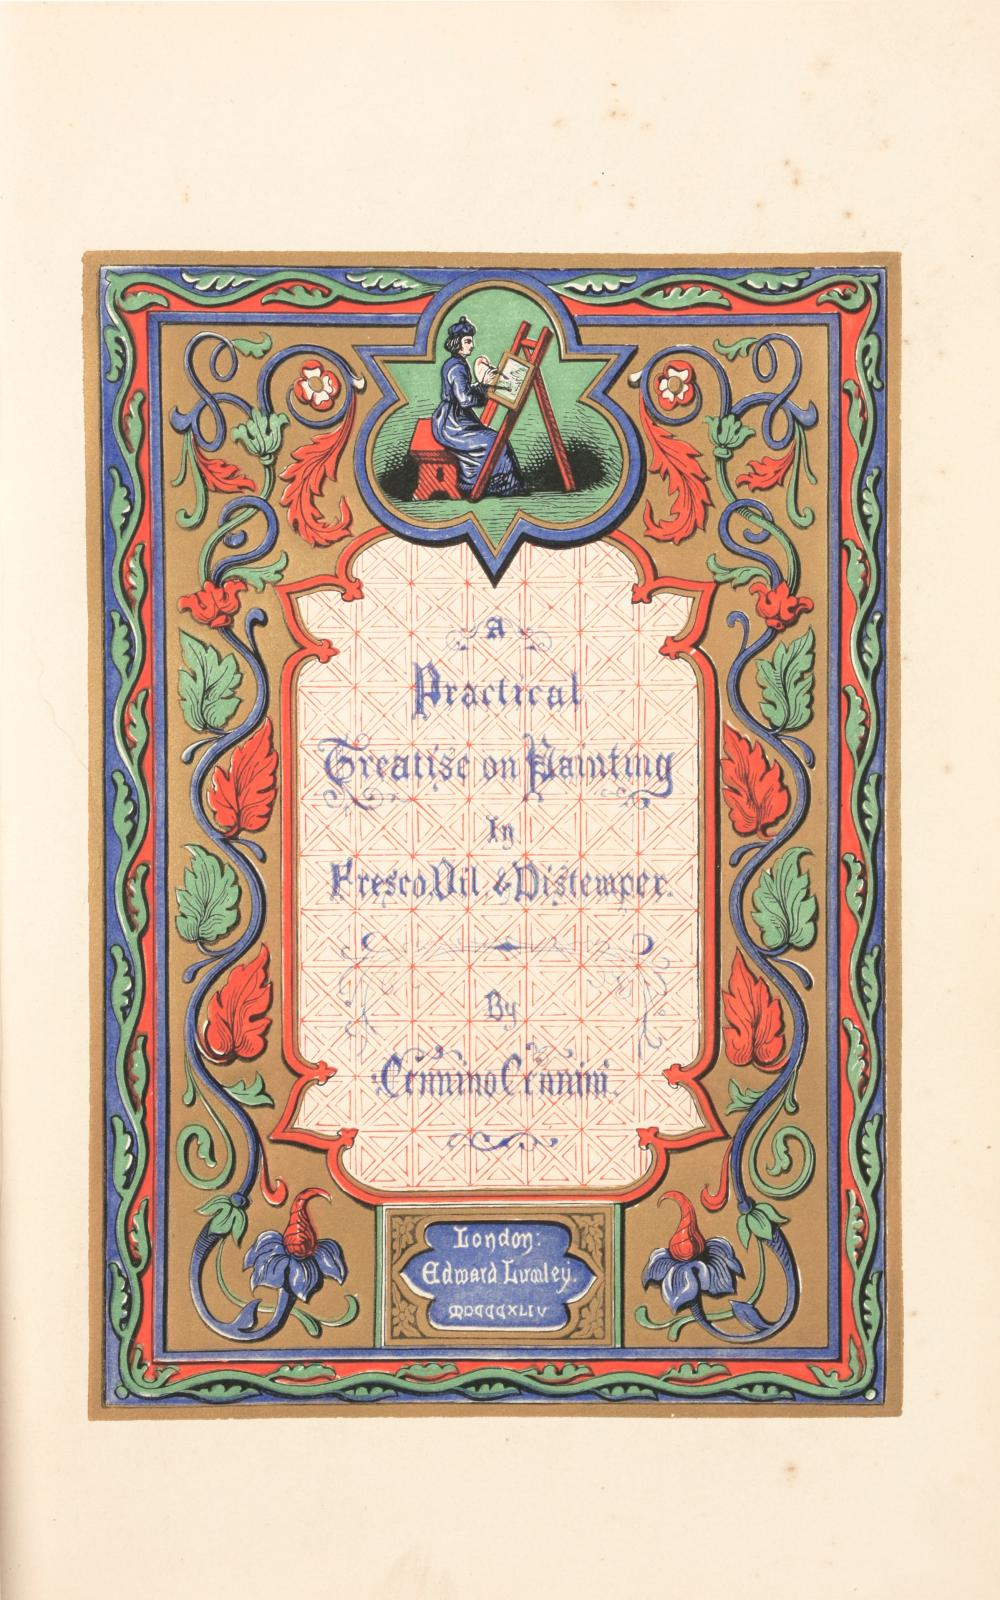 CENNINI, Cennino - Signor TAMBRONI - MERRIFIELD – A treatise on painting, written by Cennino Cennini in the year 1437, and first published in Italian in 1821, with an introduction and notes, by Sinor Tambroni, containing practical directions for painting in fresco, secco, oil, and distemper, with the art of gilding and illuminating manuscripts adopted by the Old Italian Masters